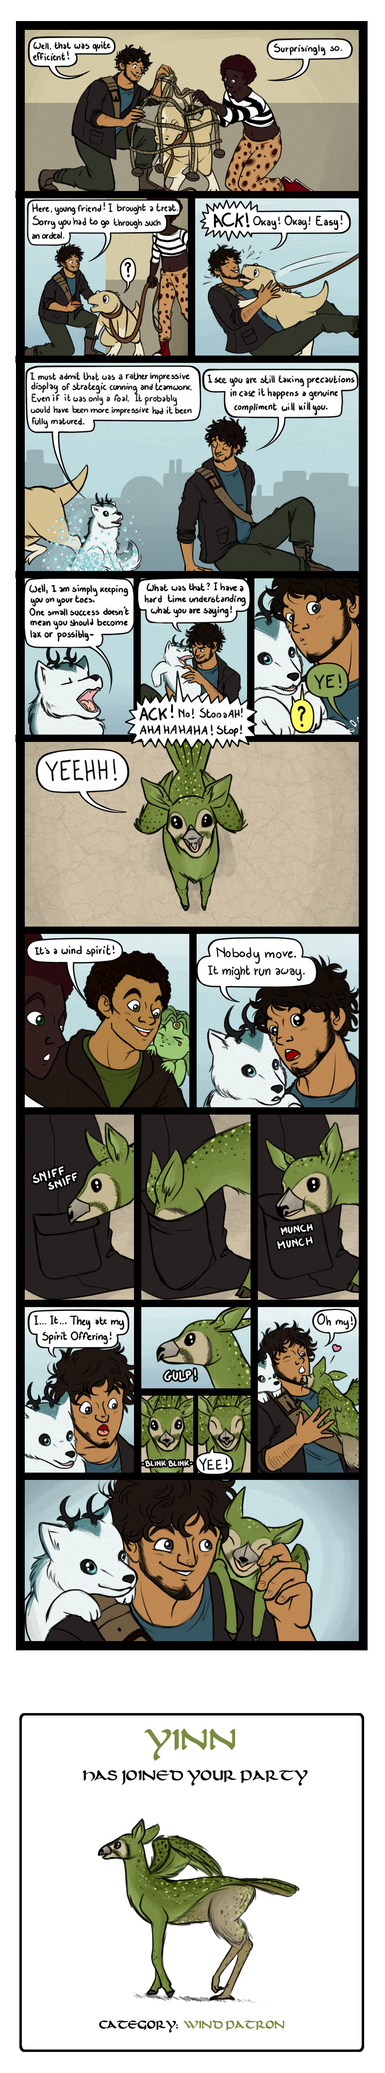 After that whirldwind - page 5 (end) by OrionStorm